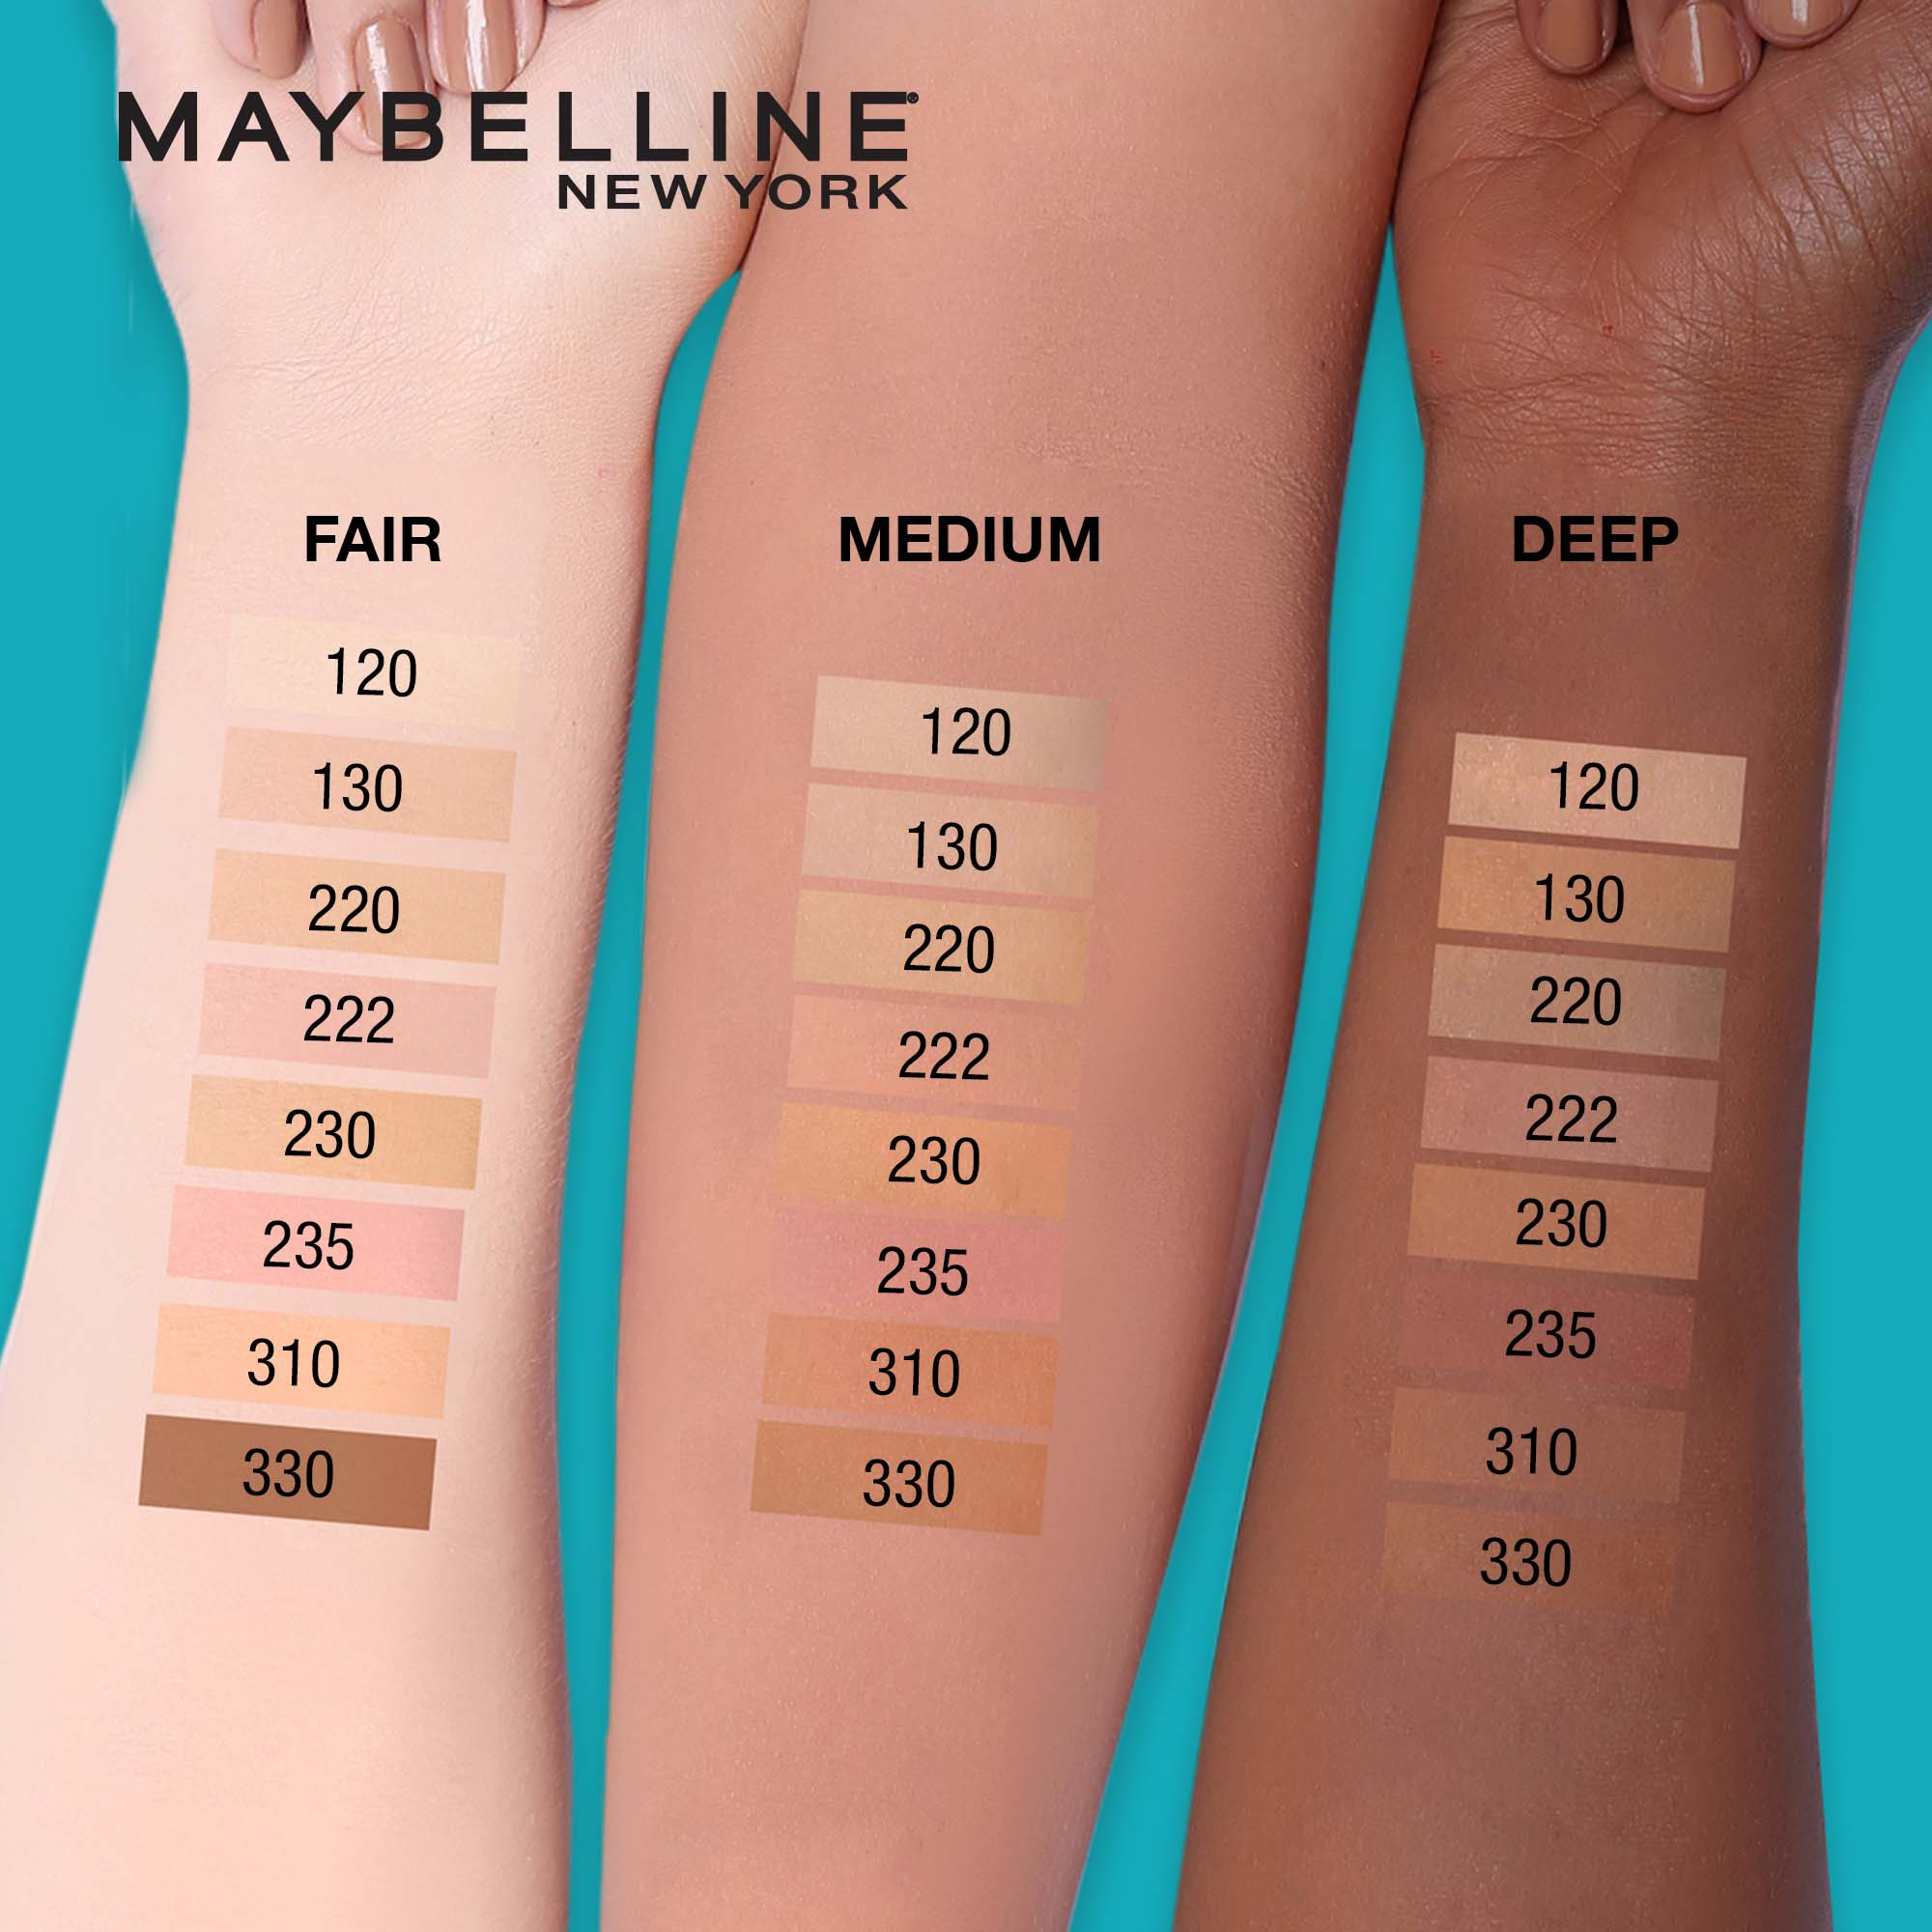 MAYBELLINEFit Me Matte + Poreless Liquid Foundation (with SPF) - 330 Toffee 30ml,FoundationWATSONS EMP. DISC.